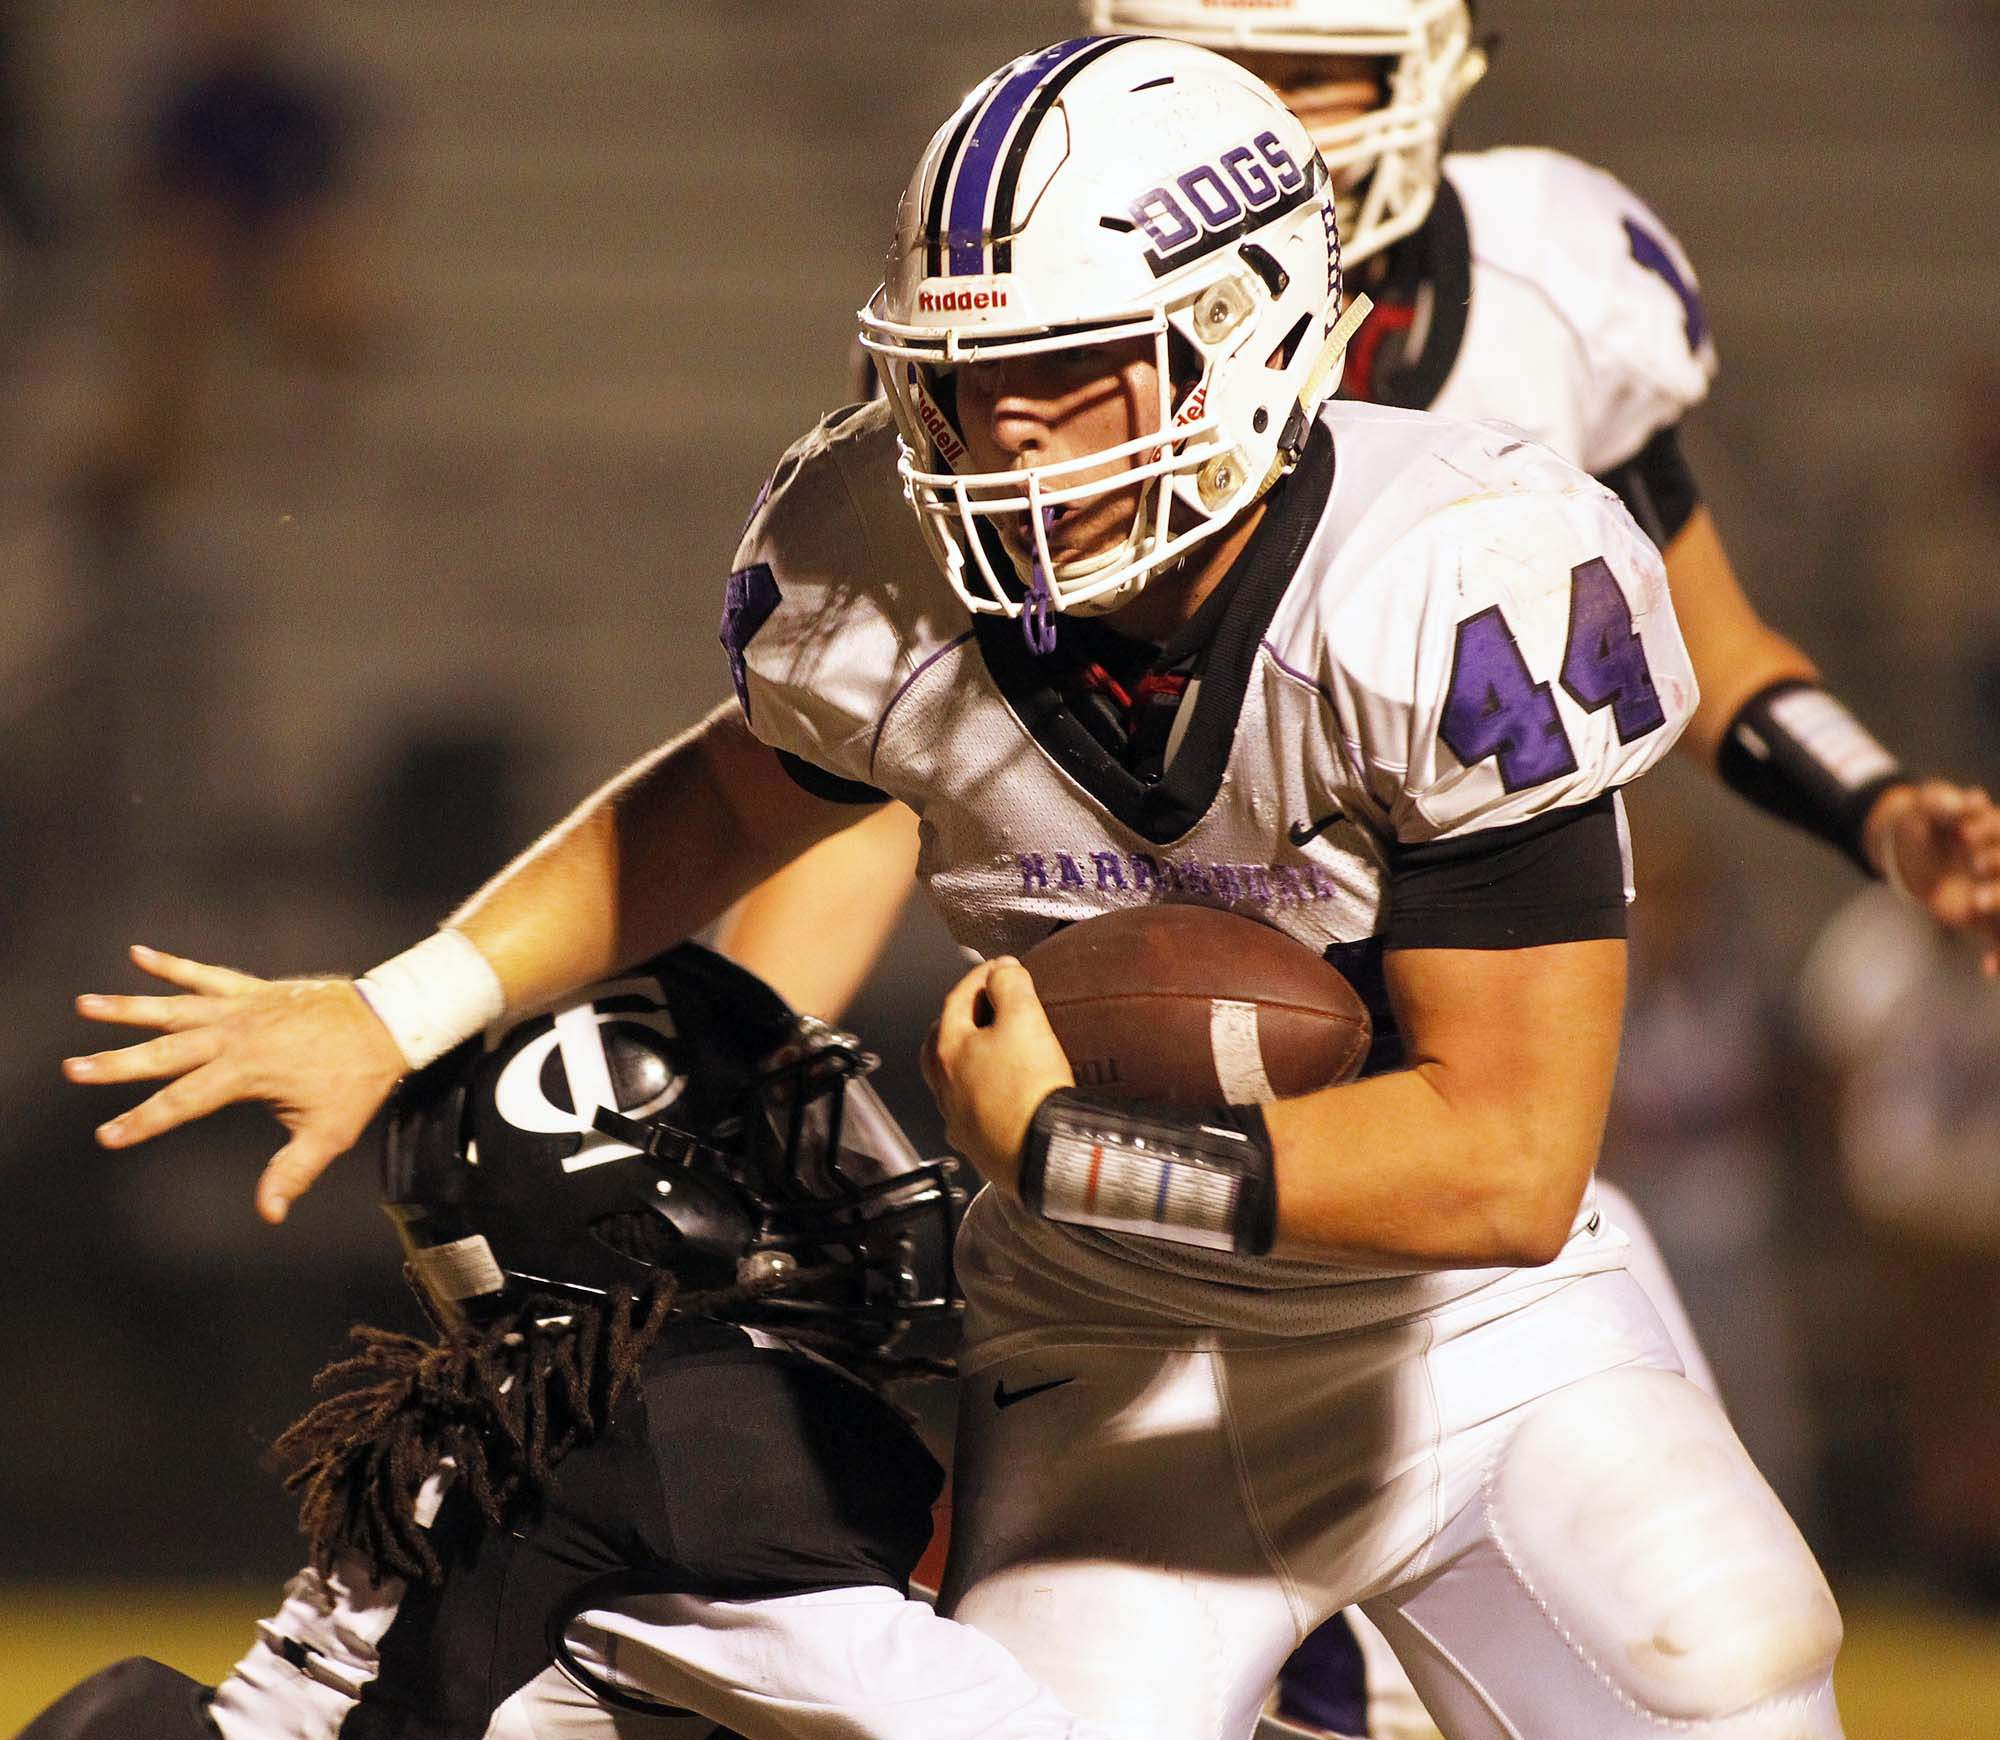 Harrisburg's Jordan Bartok scored three touchdowns in the Bulldogs' 32-22 loss at Carbondale Friday night.